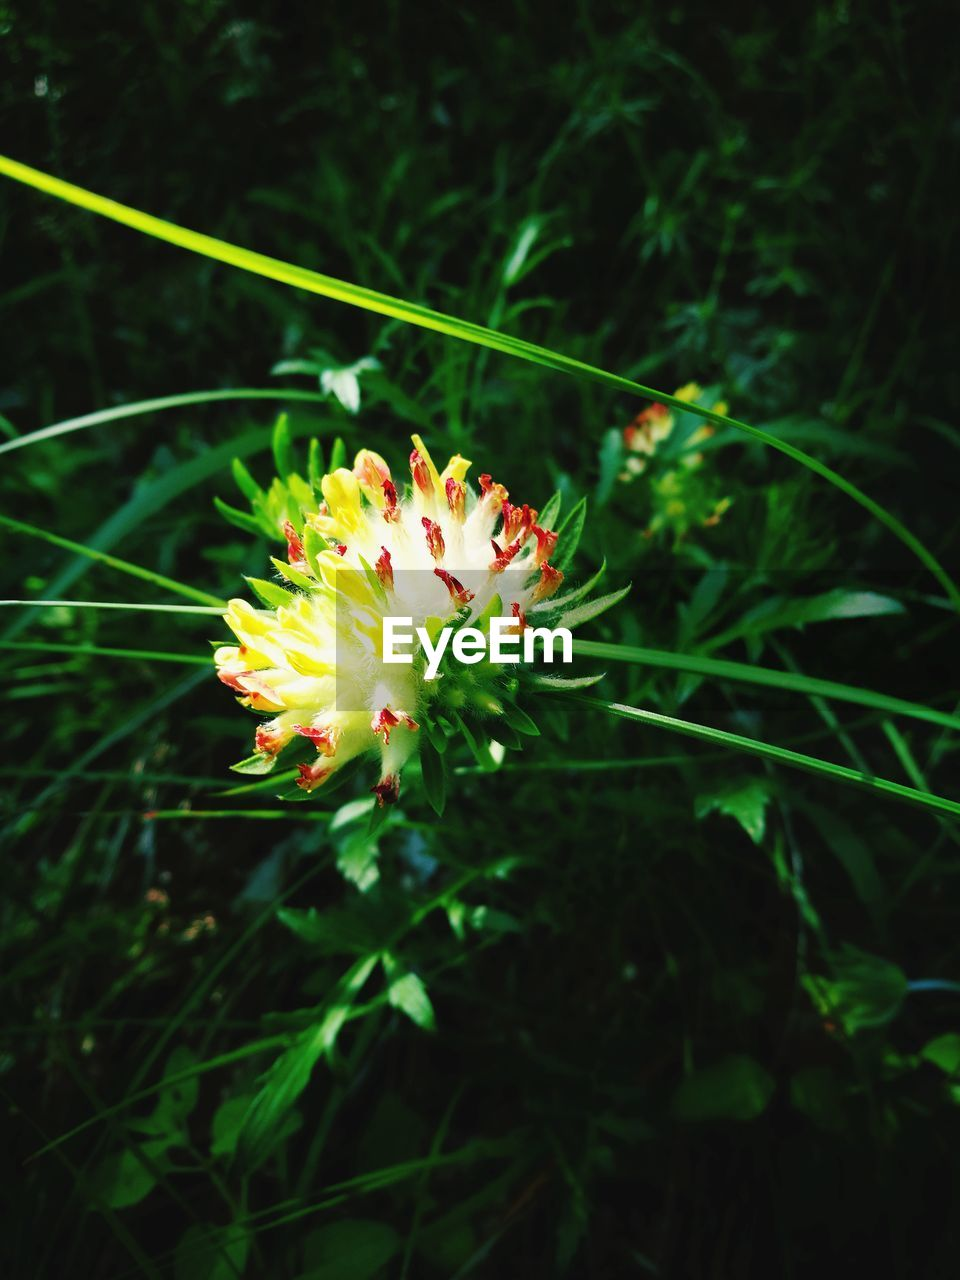 plant, flowering plant, flower, freshness, beauty in nature, fragility, vulnerability, growth, petal, close-up, flower head, inflorescence, nature, day, no people, focus on foreground, selective focus, land, outdoors, green color, pollen